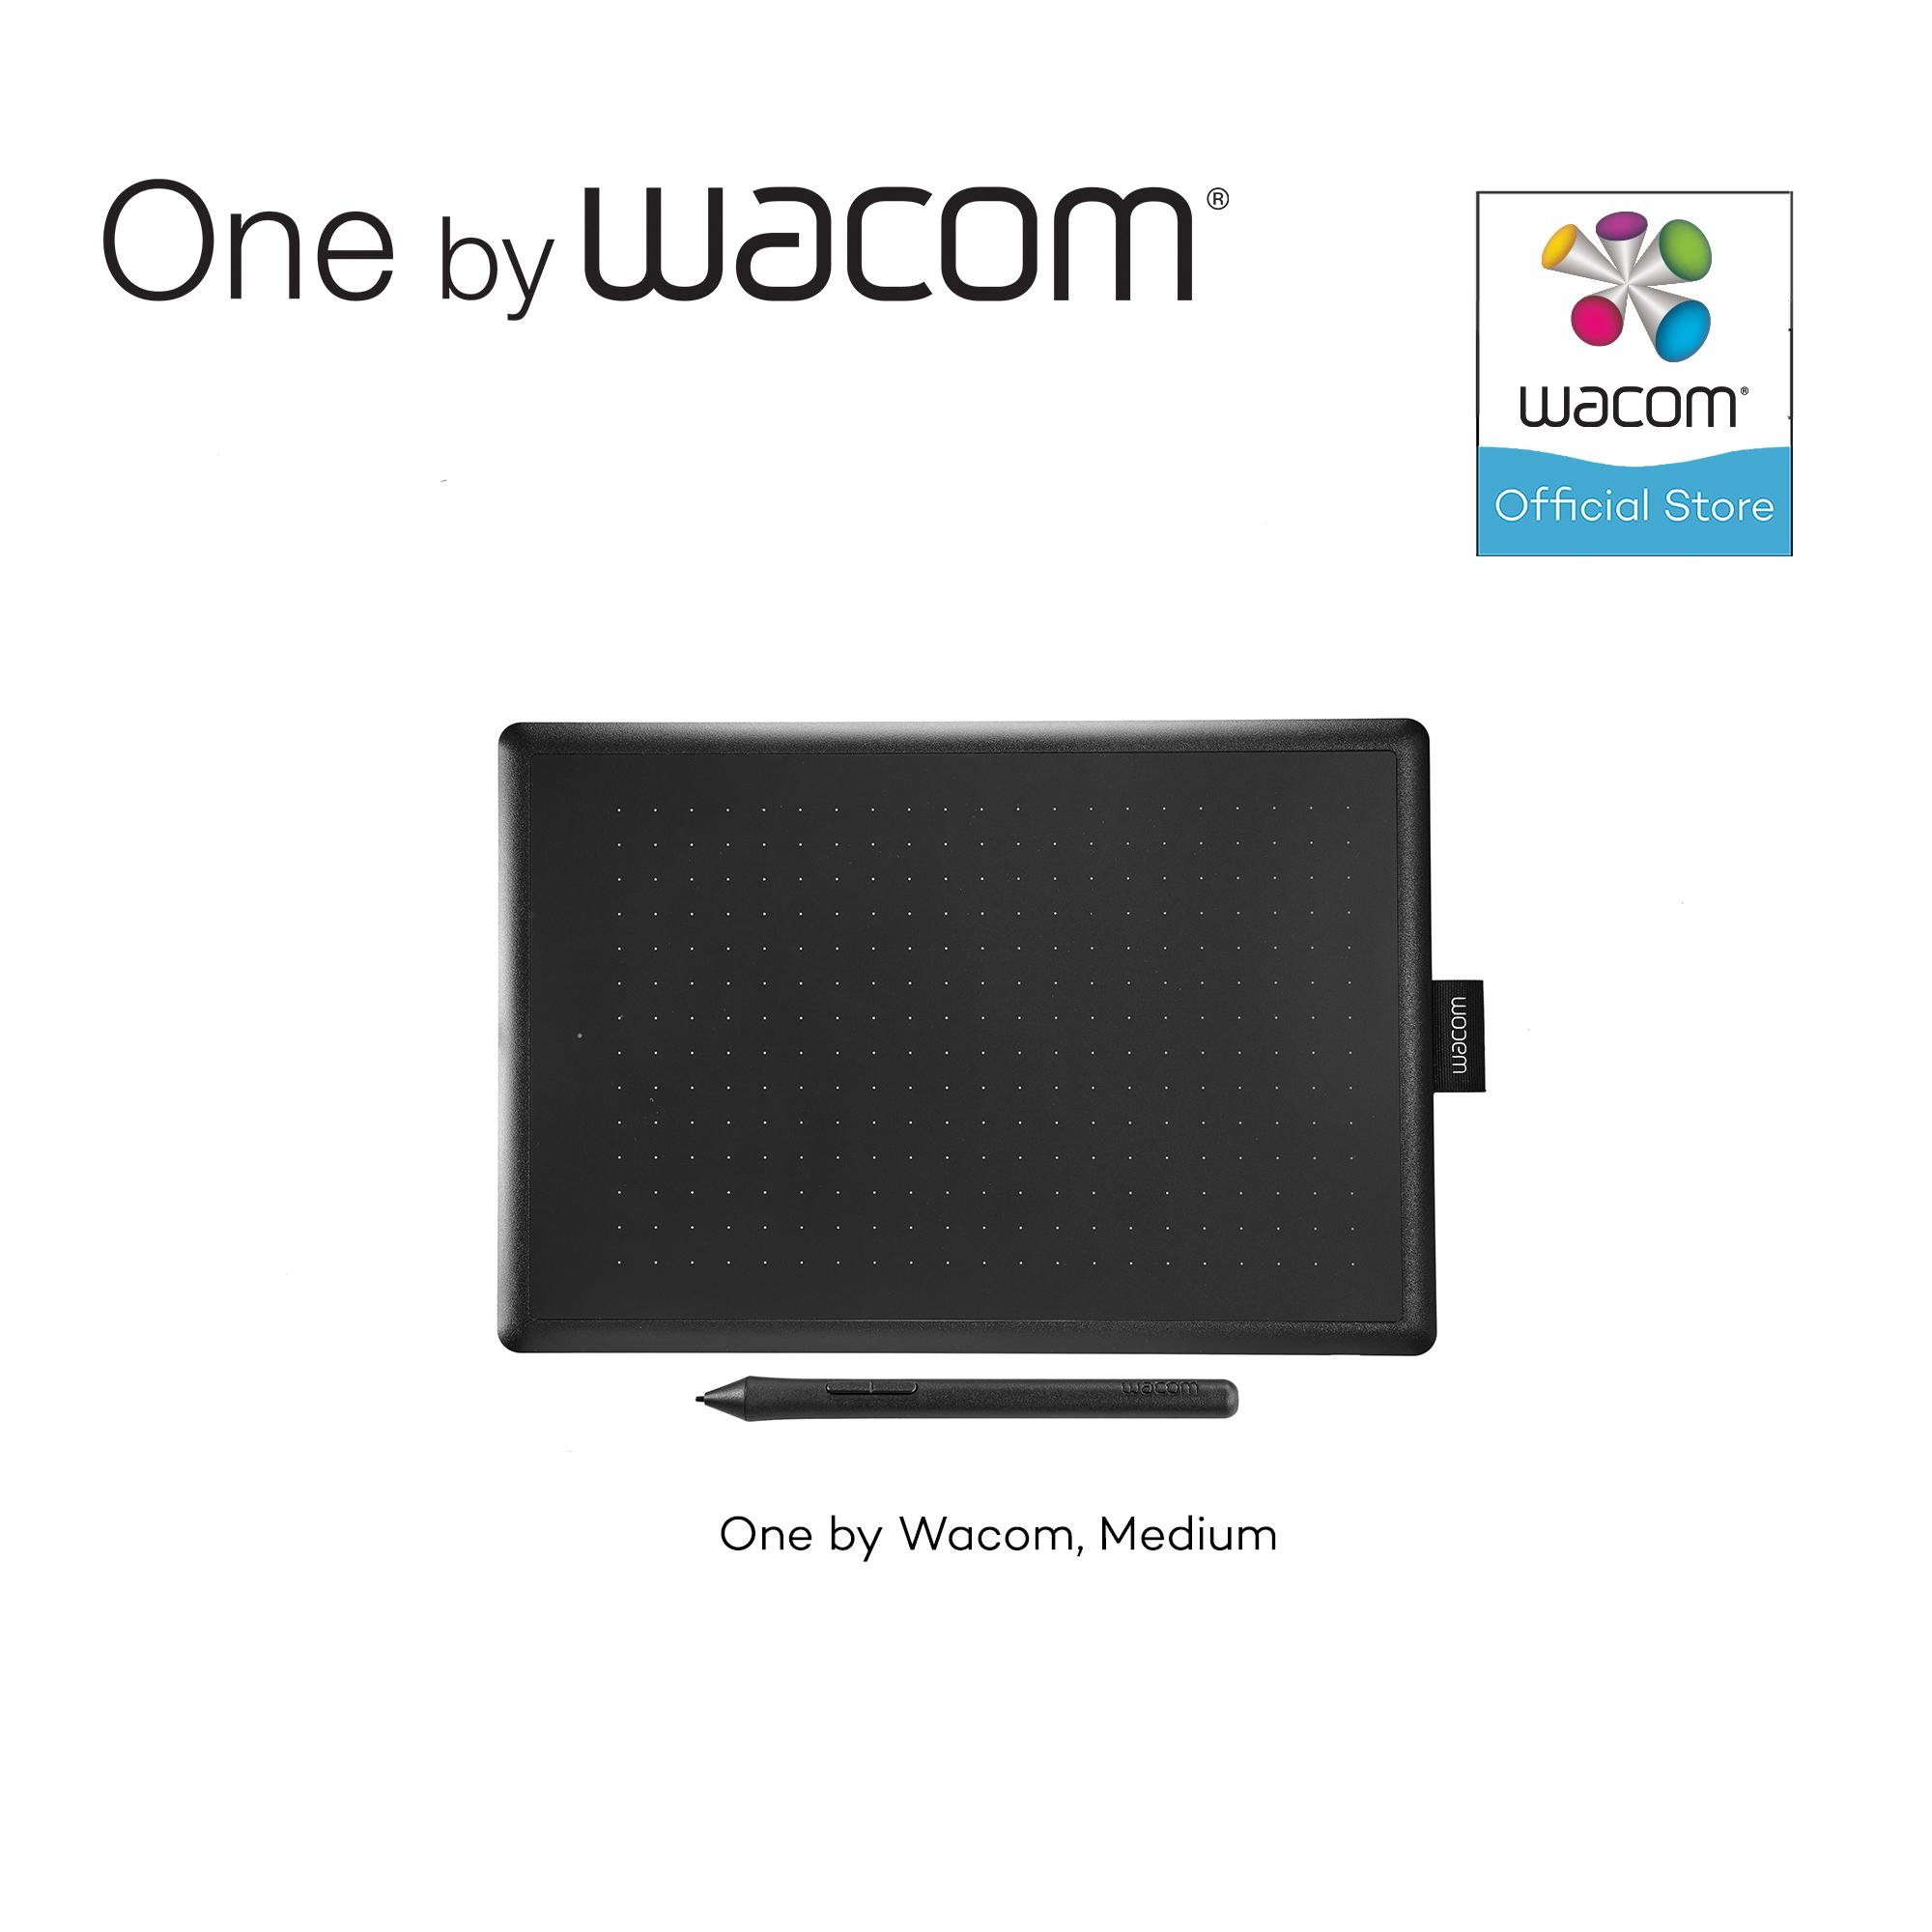 One by Wacom Medium (CTL-672) Graphic Drawing Pen Tablet